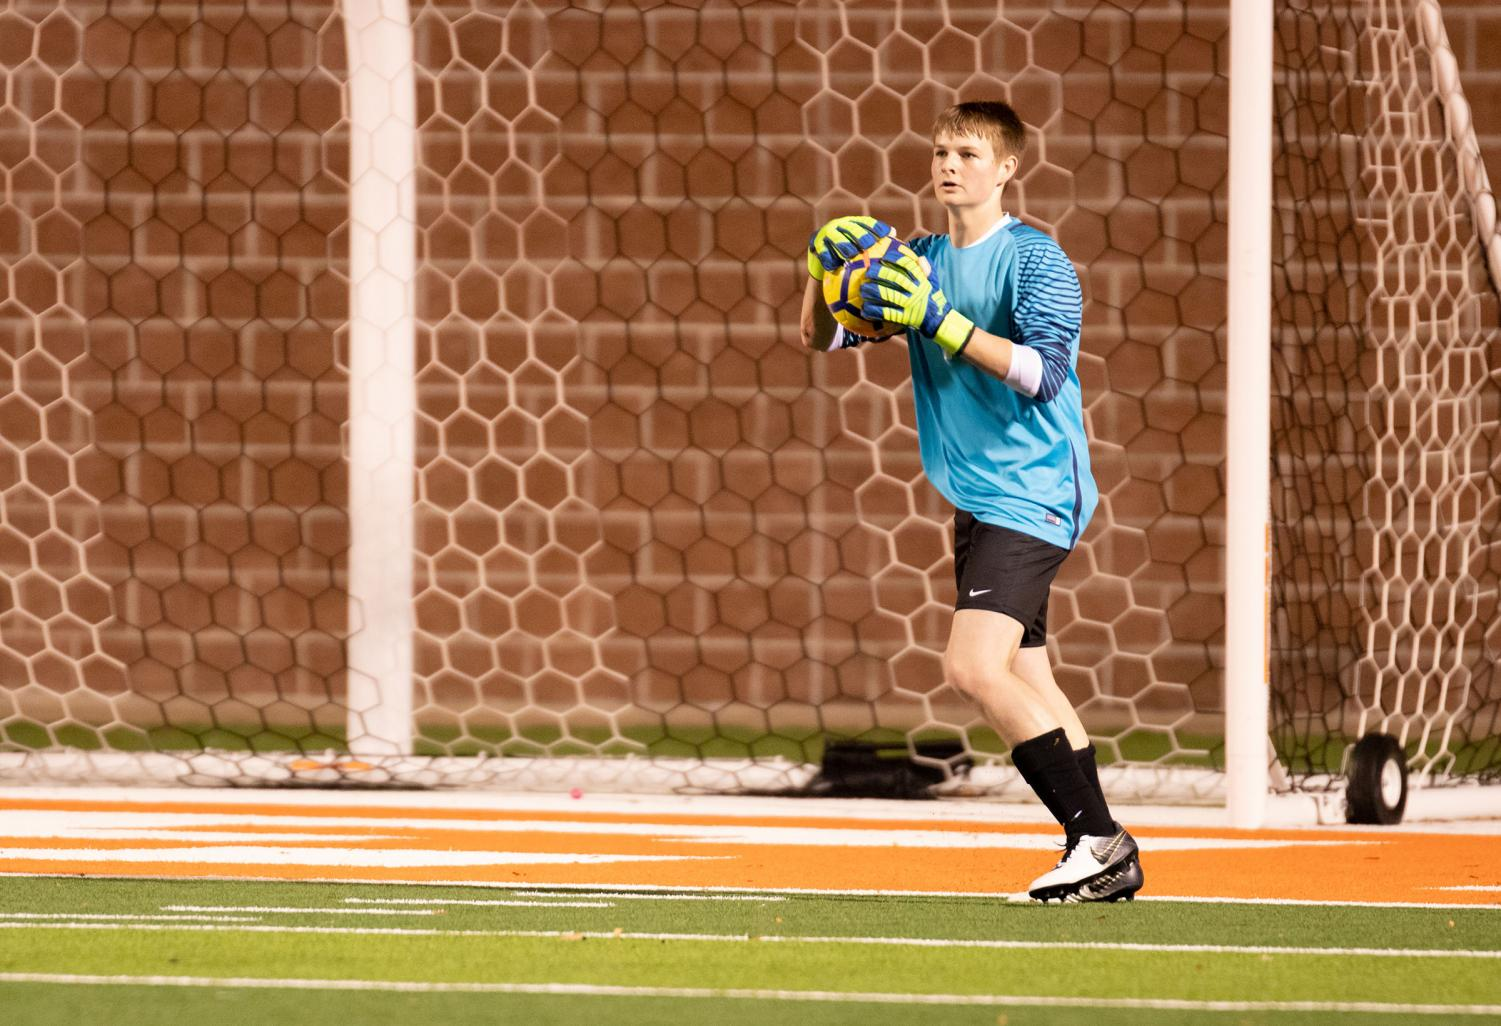 Senior Kemper York serves as the goalie on the Boys Varsity Soccer Team. Kemper transferred to Texas High at the beginning of this year.